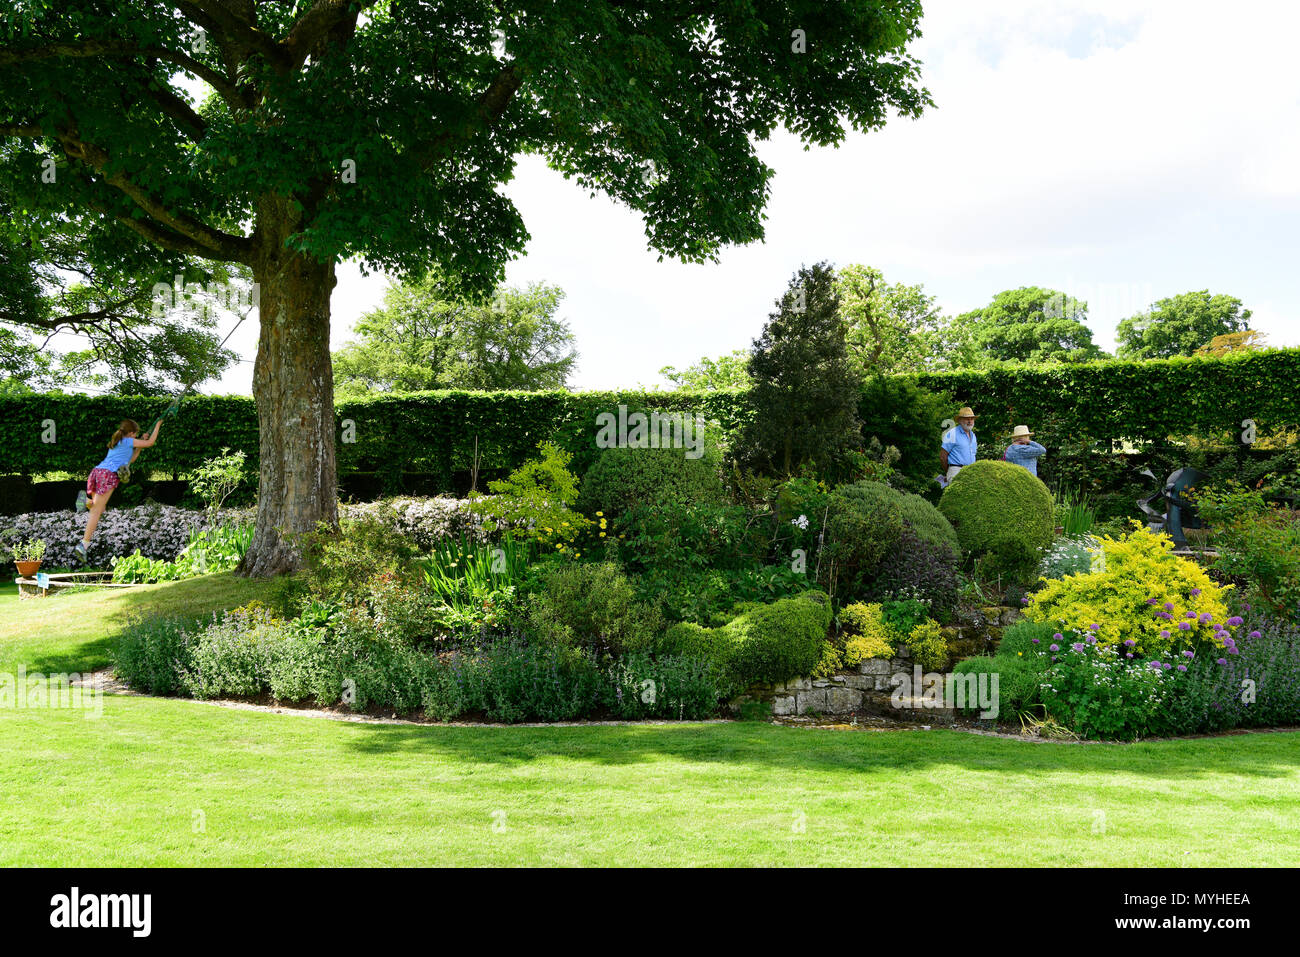 Visitors to the Open Gardens at Newton Valence perusing an English courtyard garden, Newton Valence, near Alton, Hampshire, UK. 20.05.2018. - Stock Image